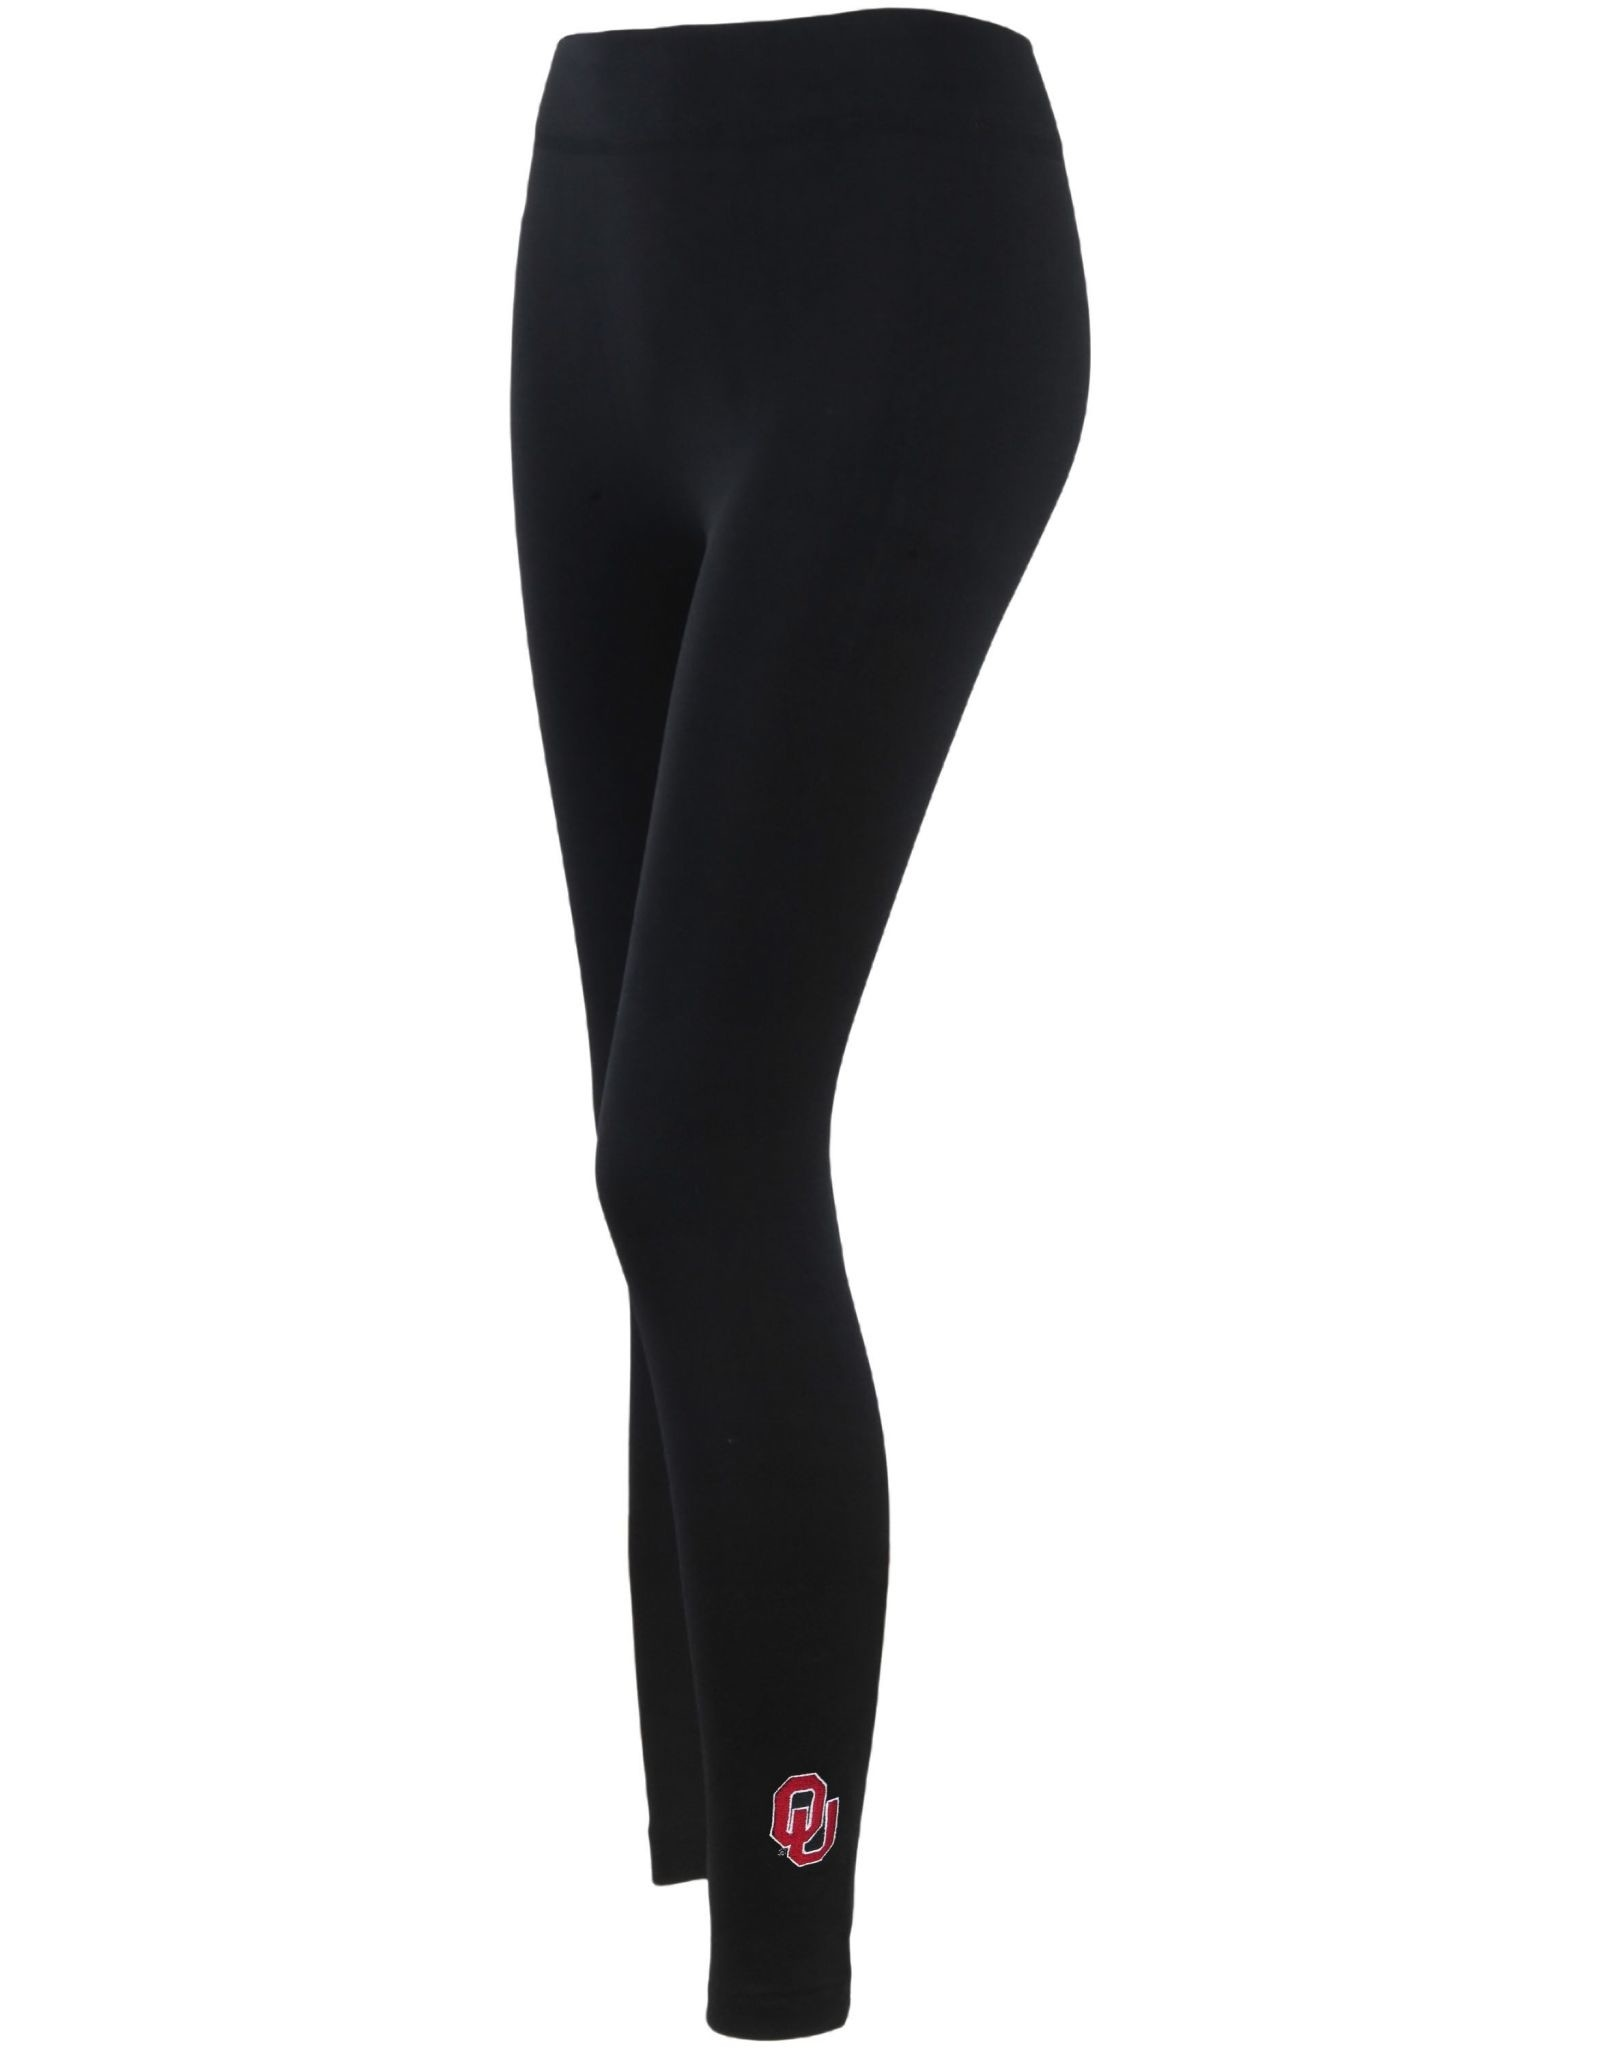 ZooZatz Embroidered OU Fleece Leggings-Black